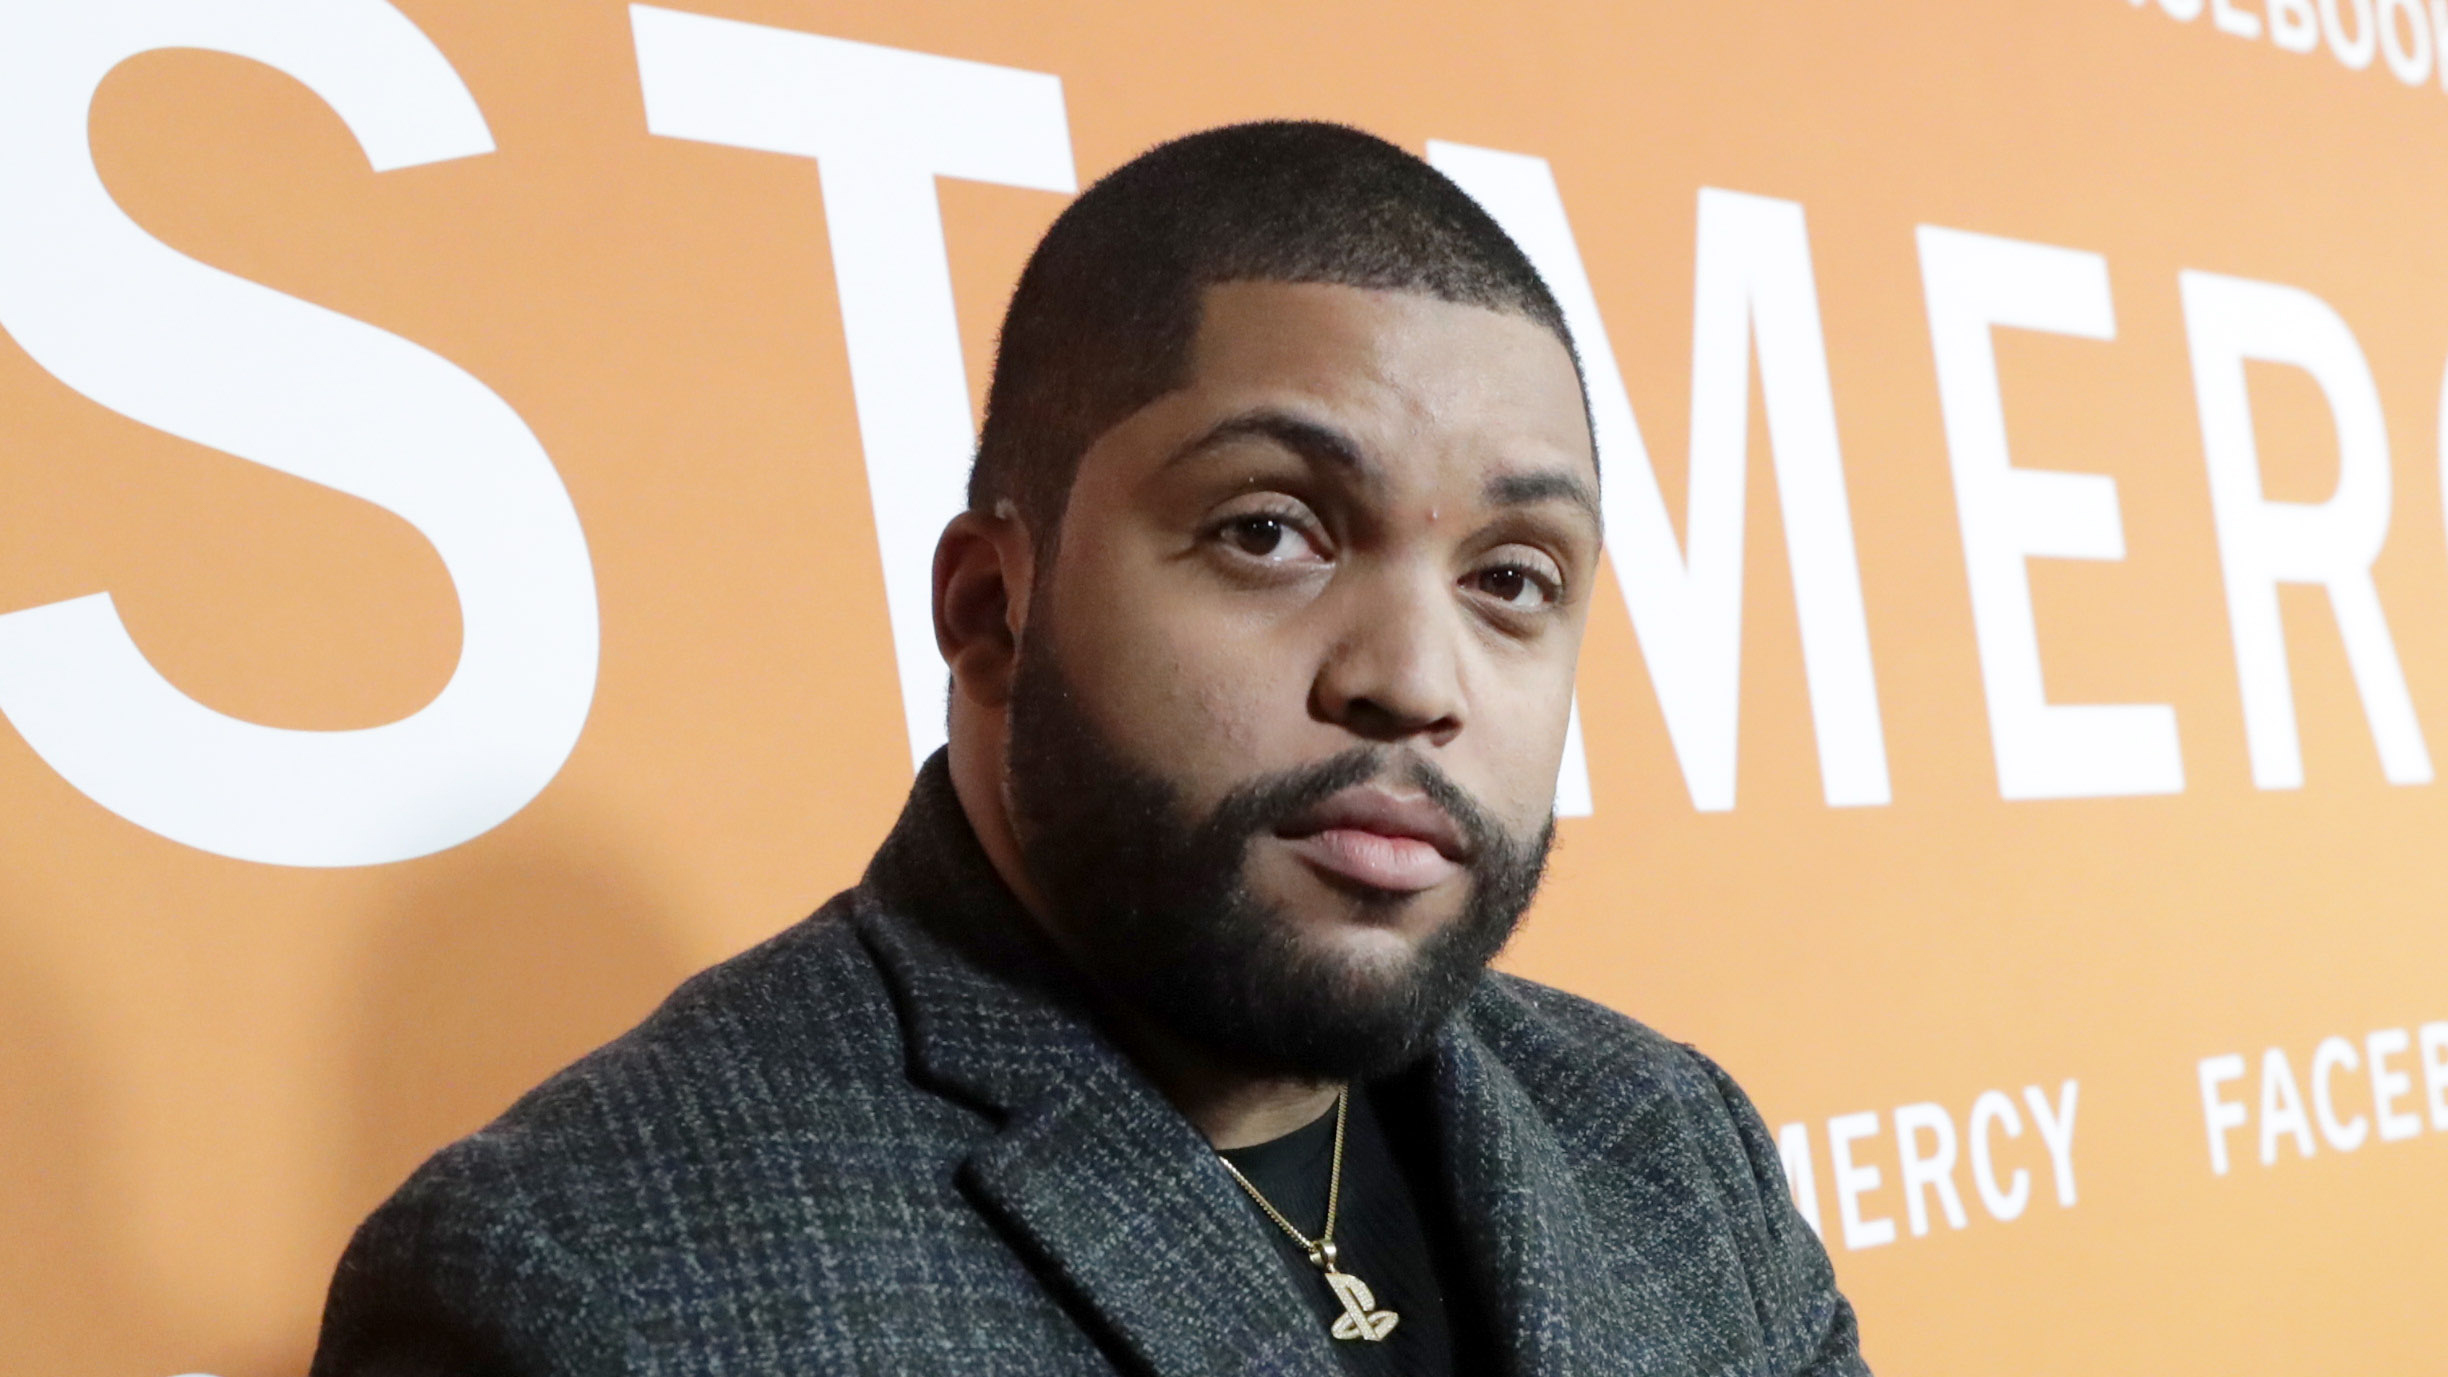 O'Shea Jackson Jr. Takes Over Lead Role in Apple Drama 'Swagger' - Variety